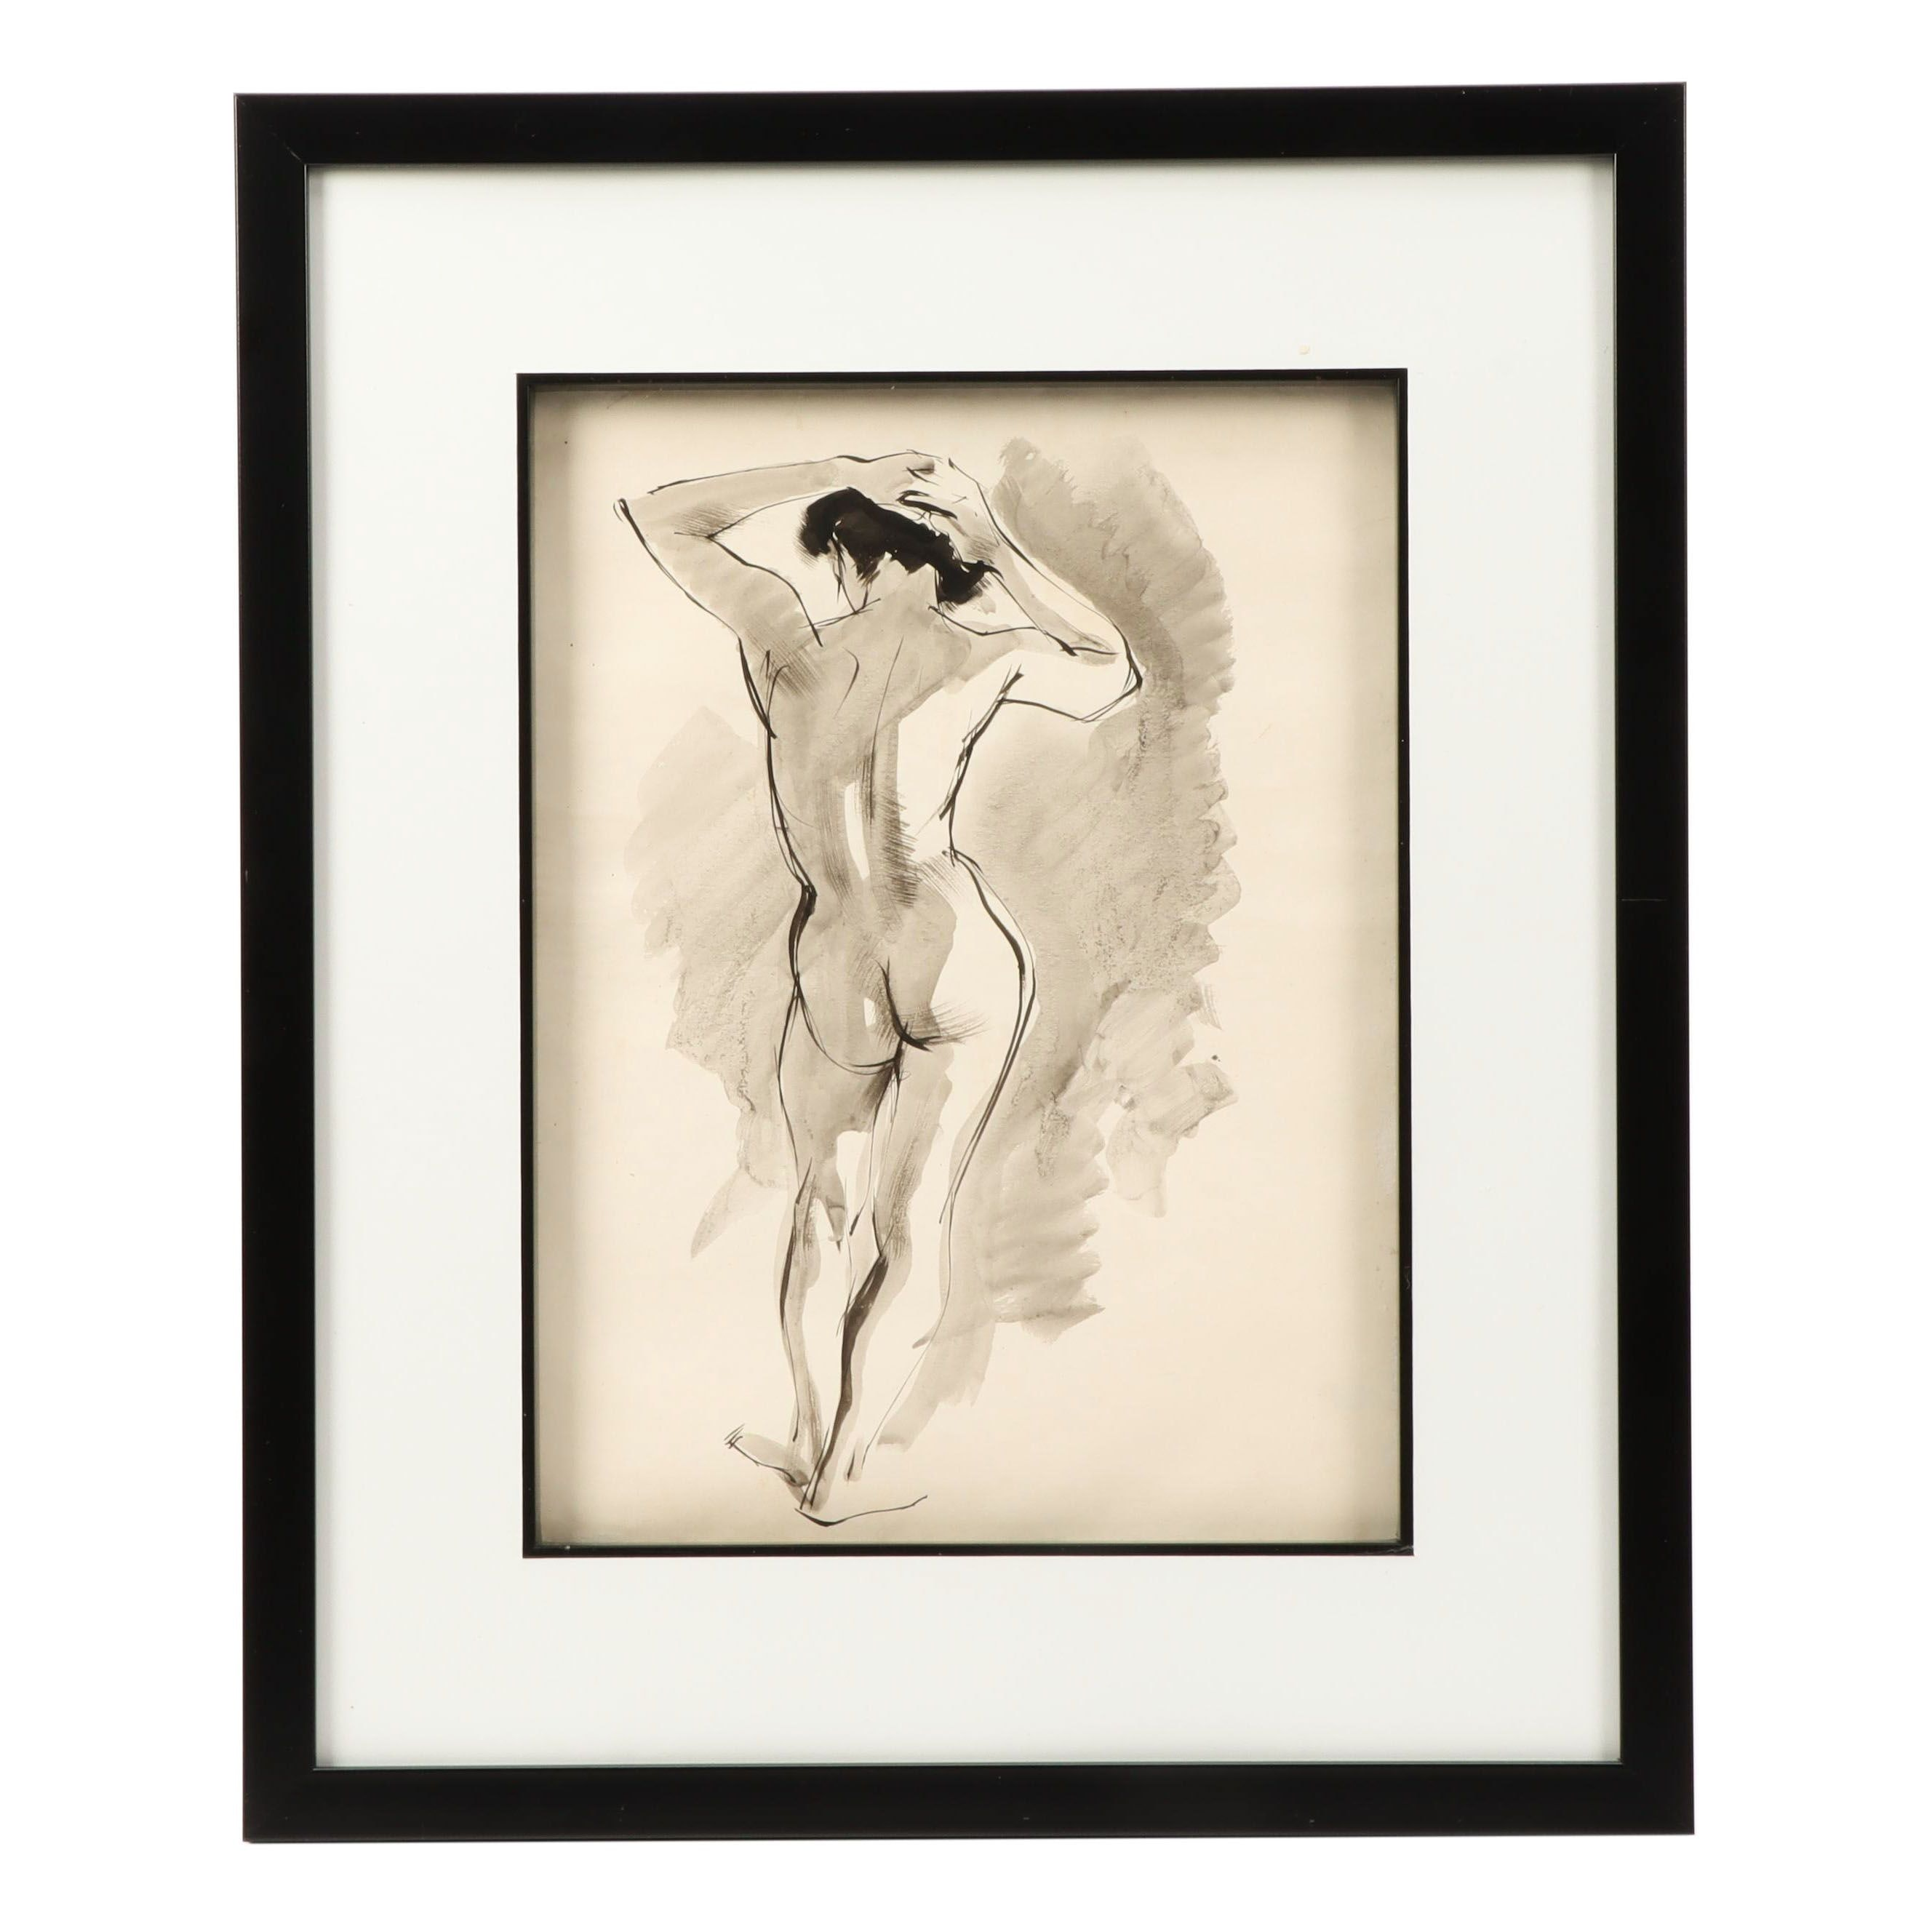 Truman Toland Watercolor Painting of Nude Figure